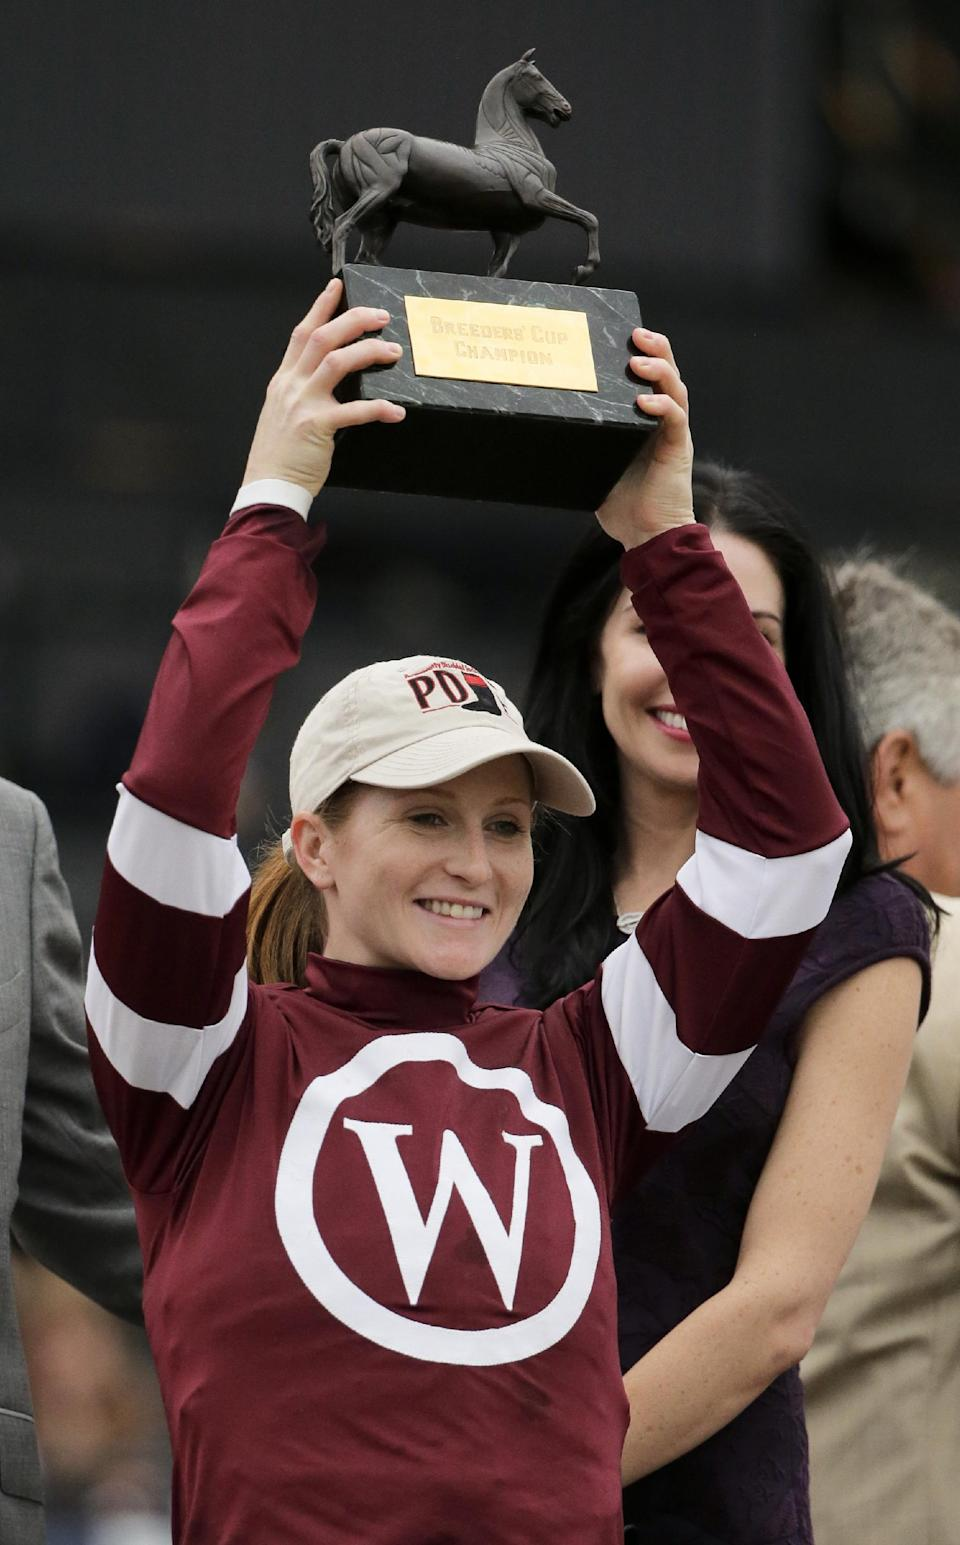 Rosie Napravnik celebrates with the trophy after riding Untapable to victory in the Breeders' Cup Distaff horse race at Santa Anita Park Friday, Oct. 31, 2014, in Arcadia, Calif. (AP Photo/Jae C. Hong)